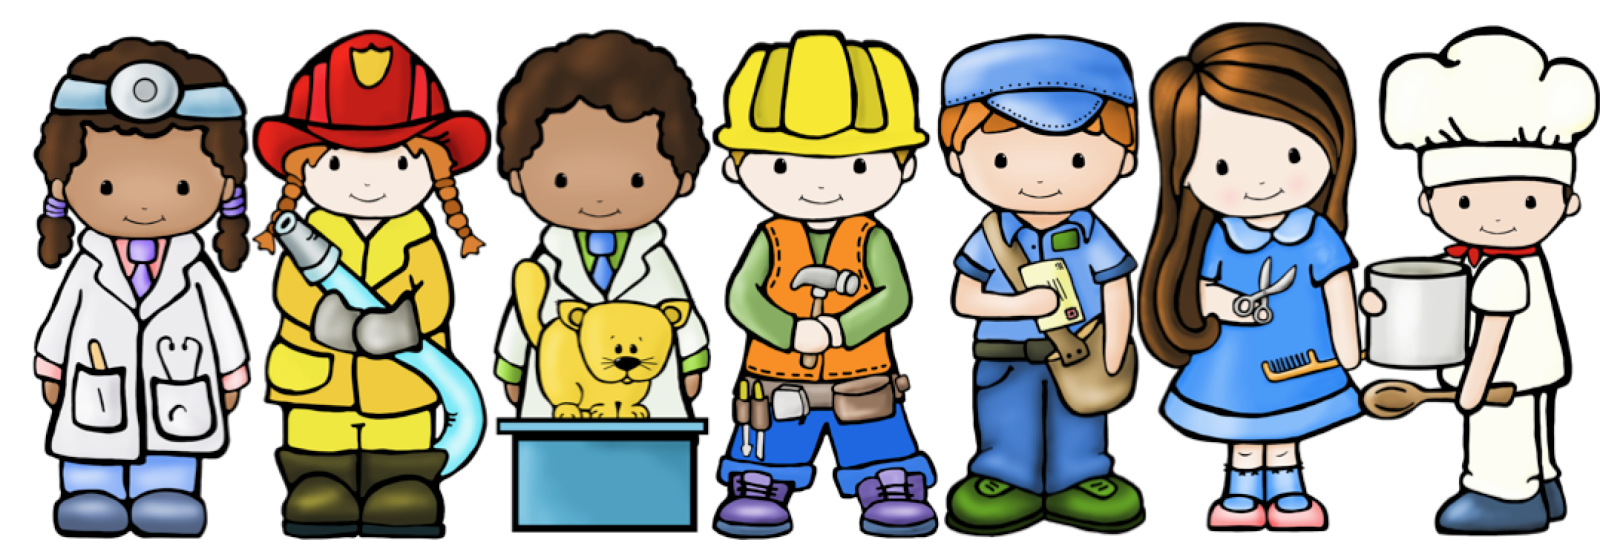 Community Helpers Clipart-Community Helpers Clipart-11